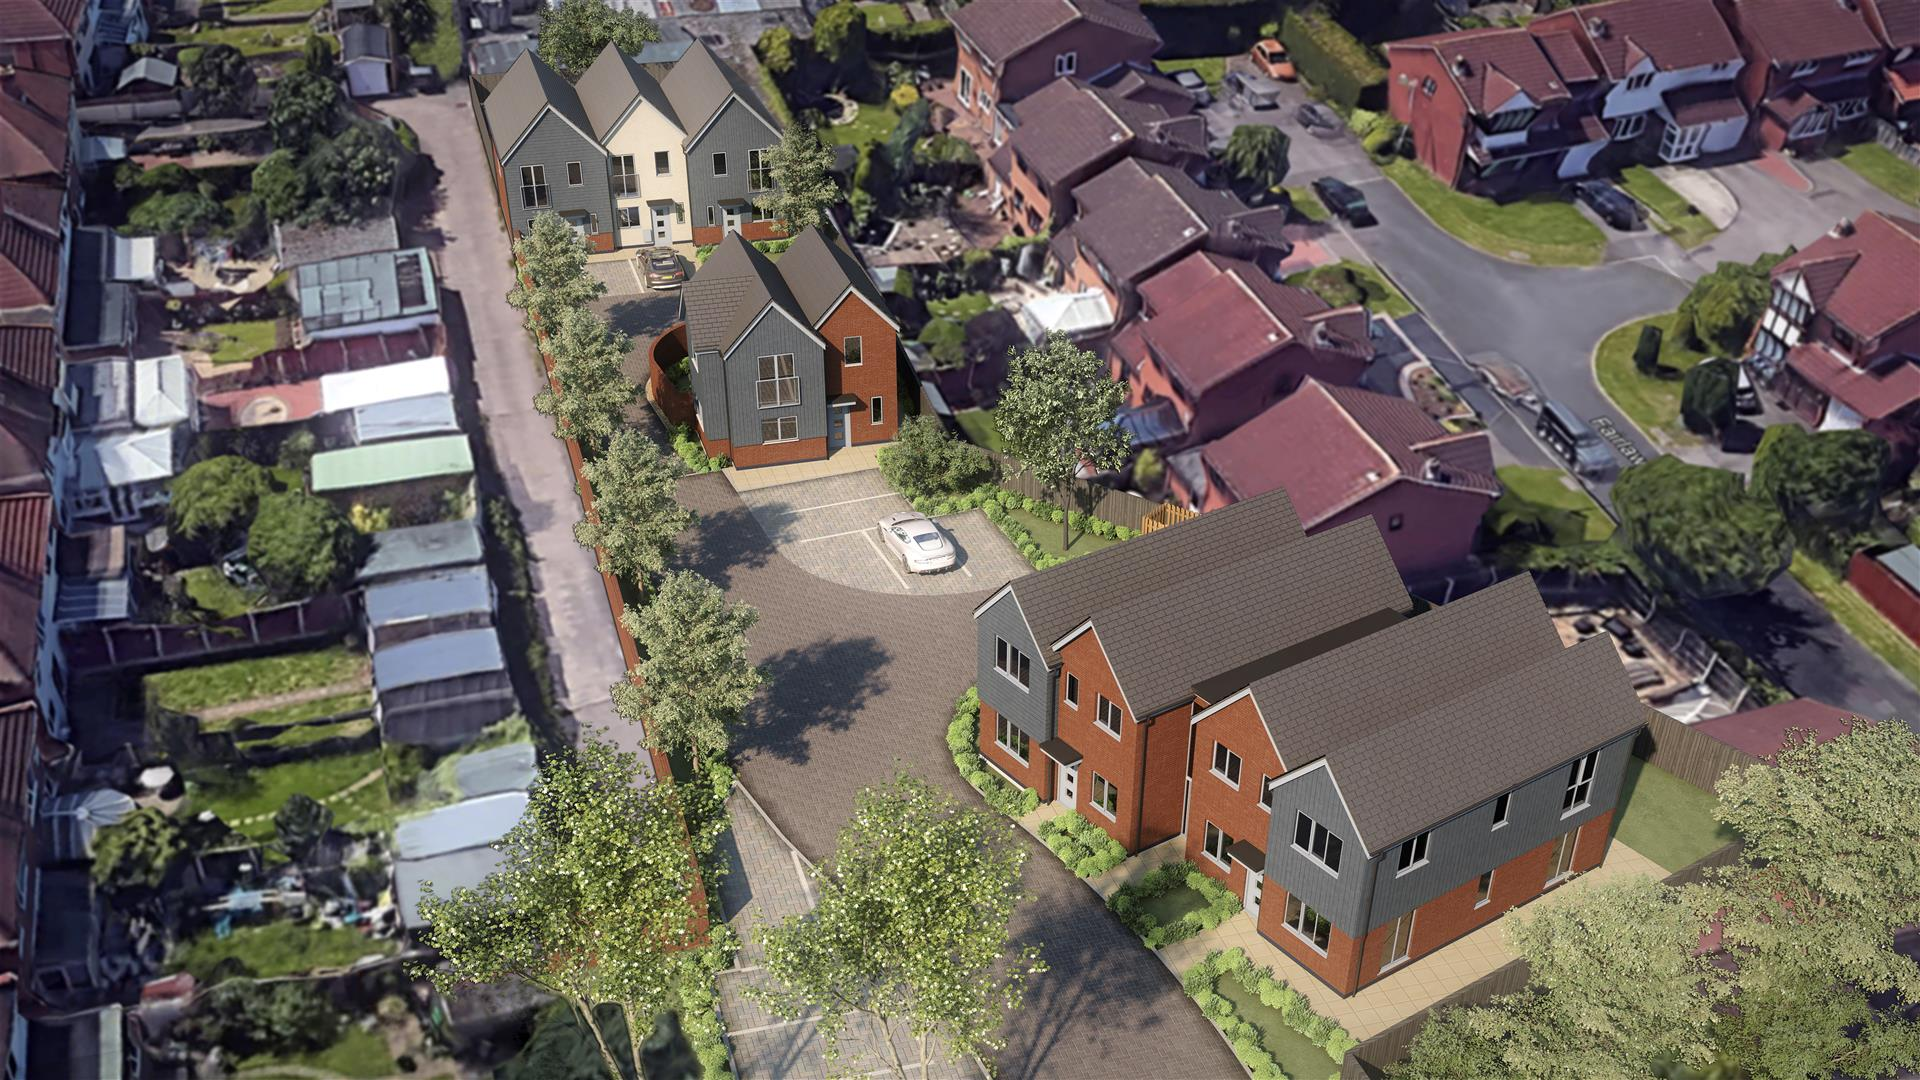 2 bed  for sale in Ridgemere Close, Yardley, Birmingham 4